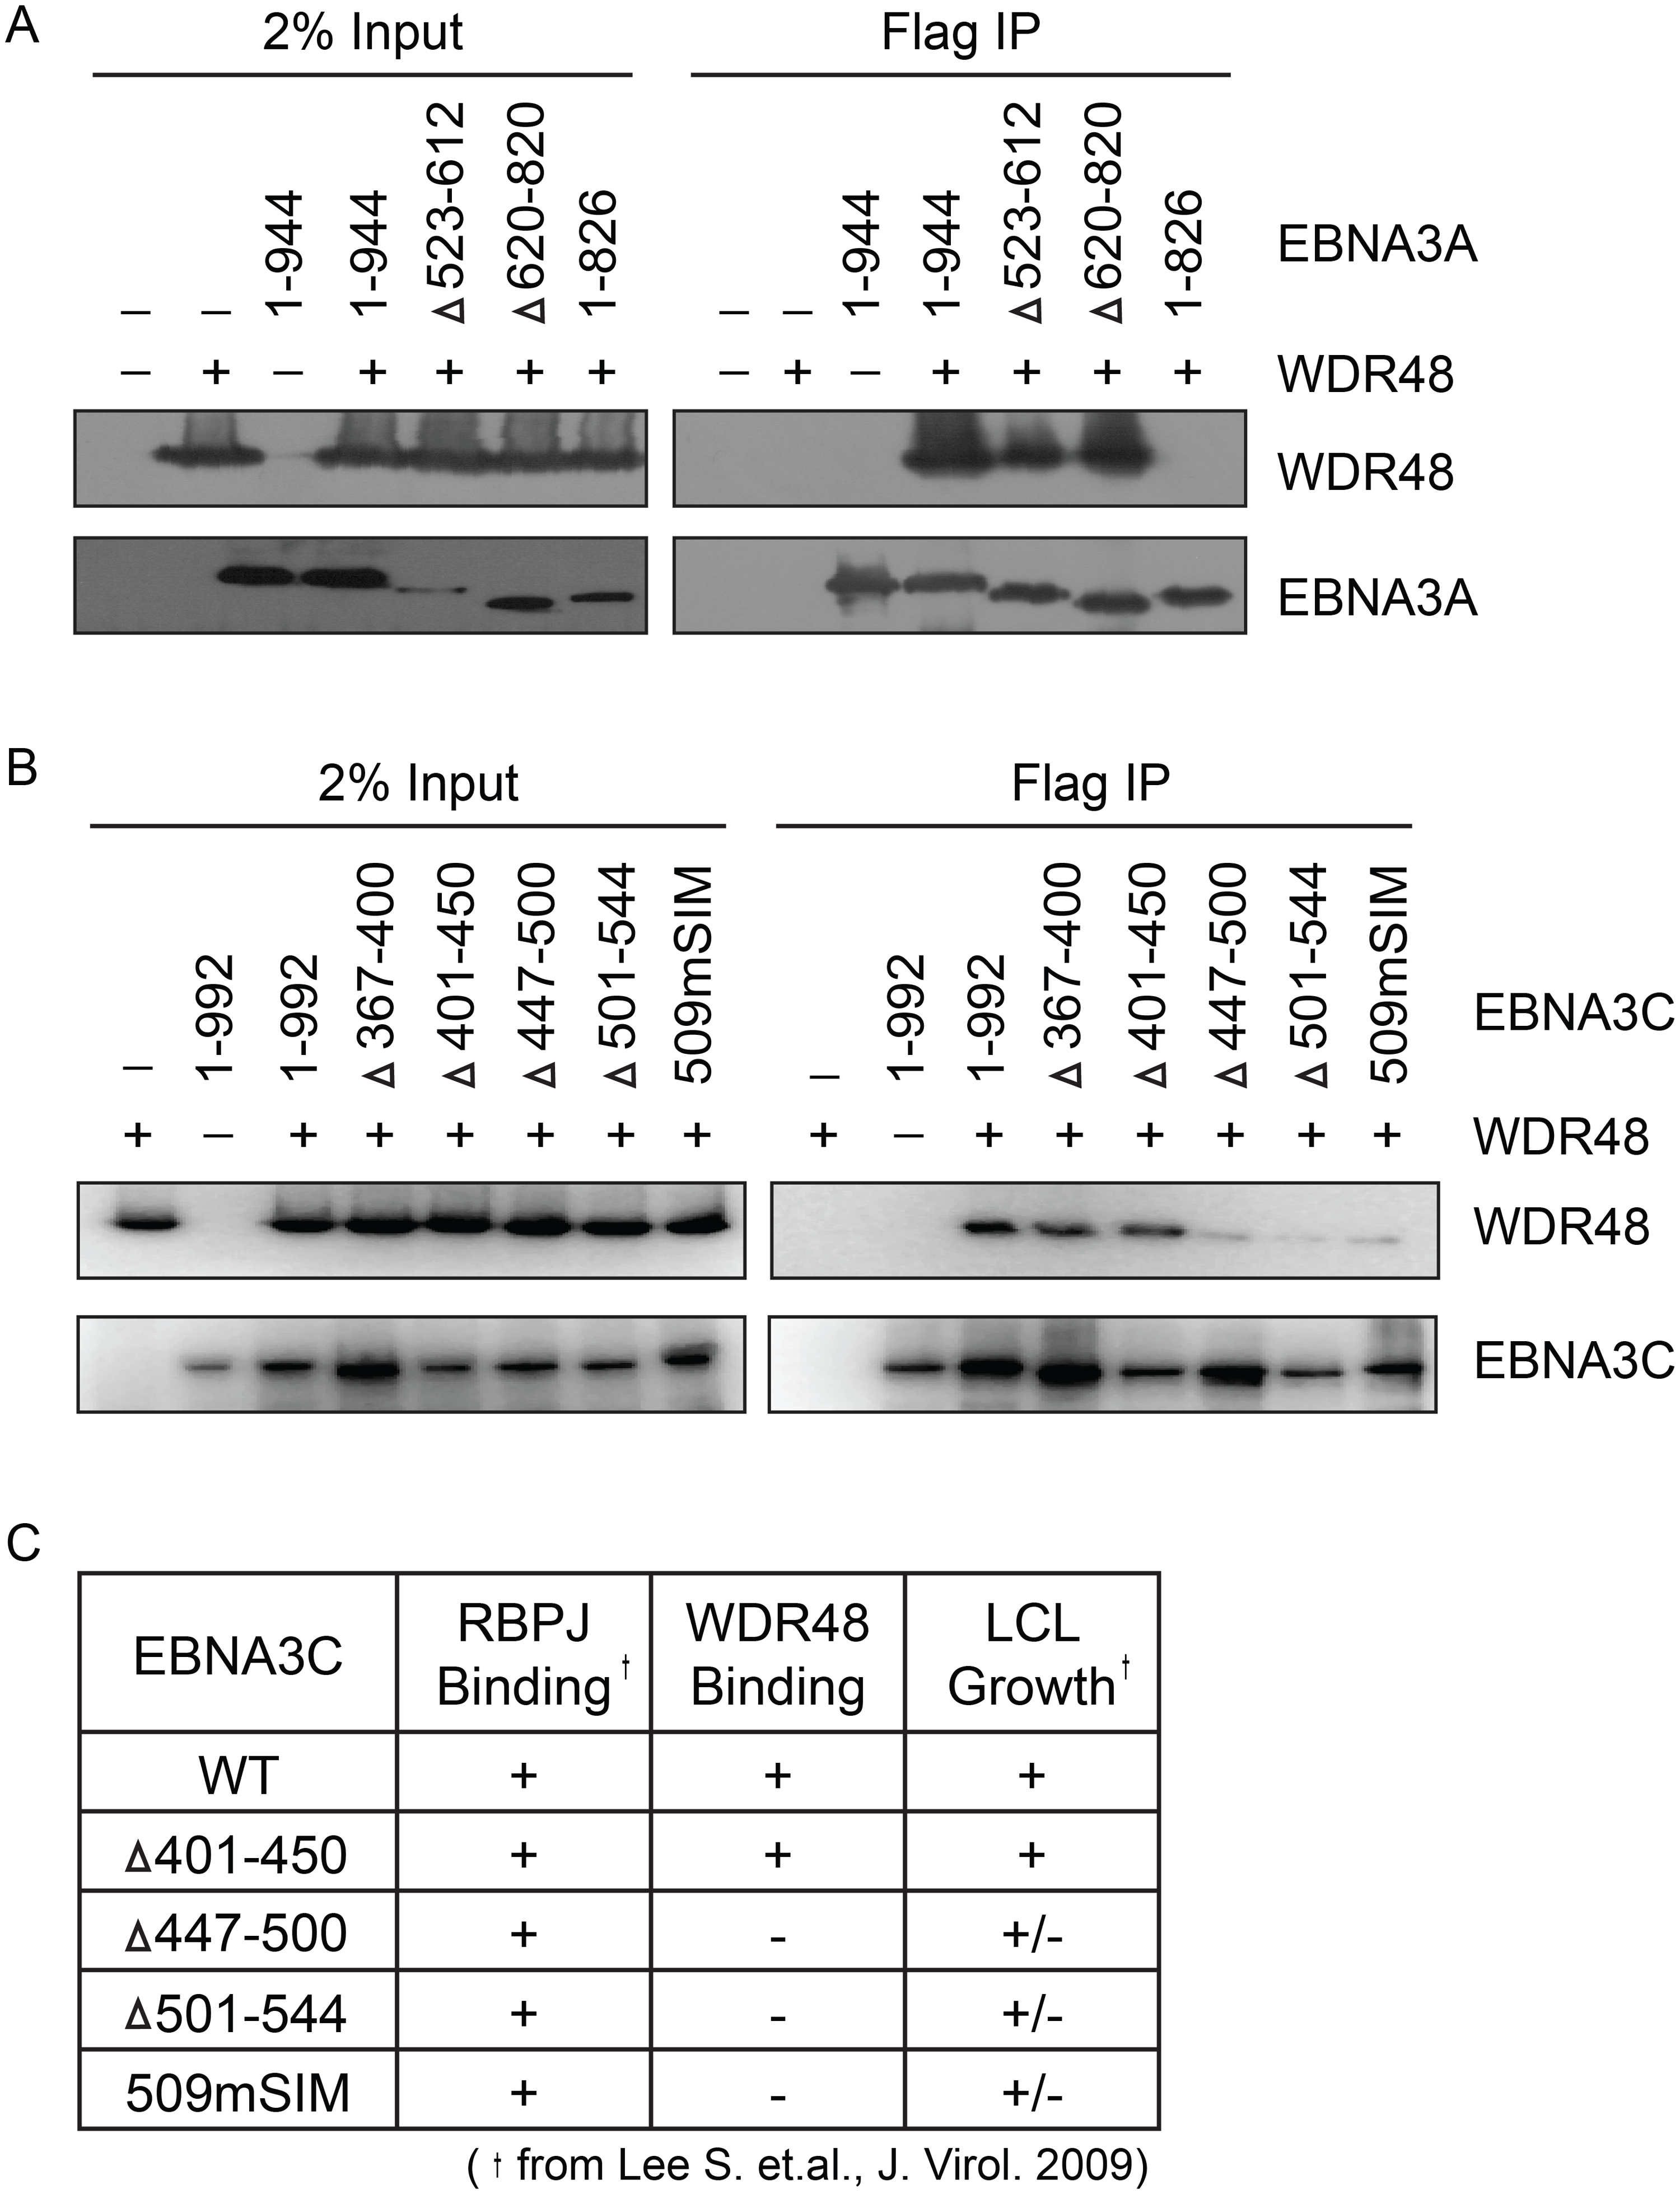 Identification of EBNA3A and EBNA3C domains that mediate WDR48 association.